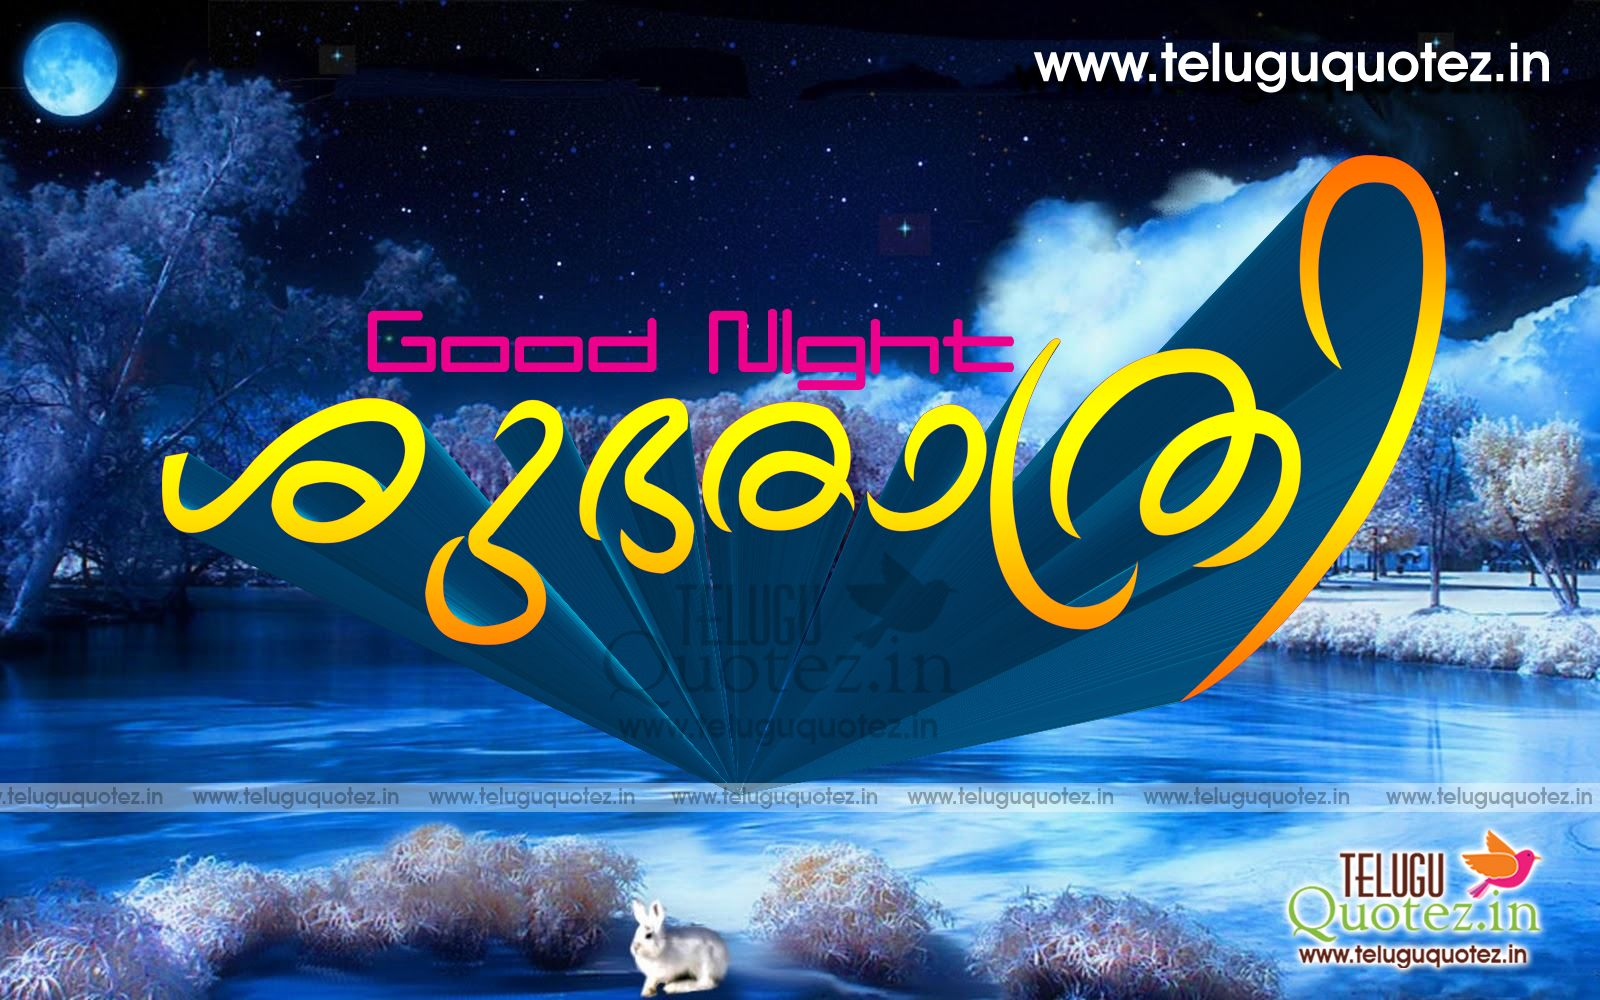 Malayalam good night wishes for friends malayalam good night altavistaventures